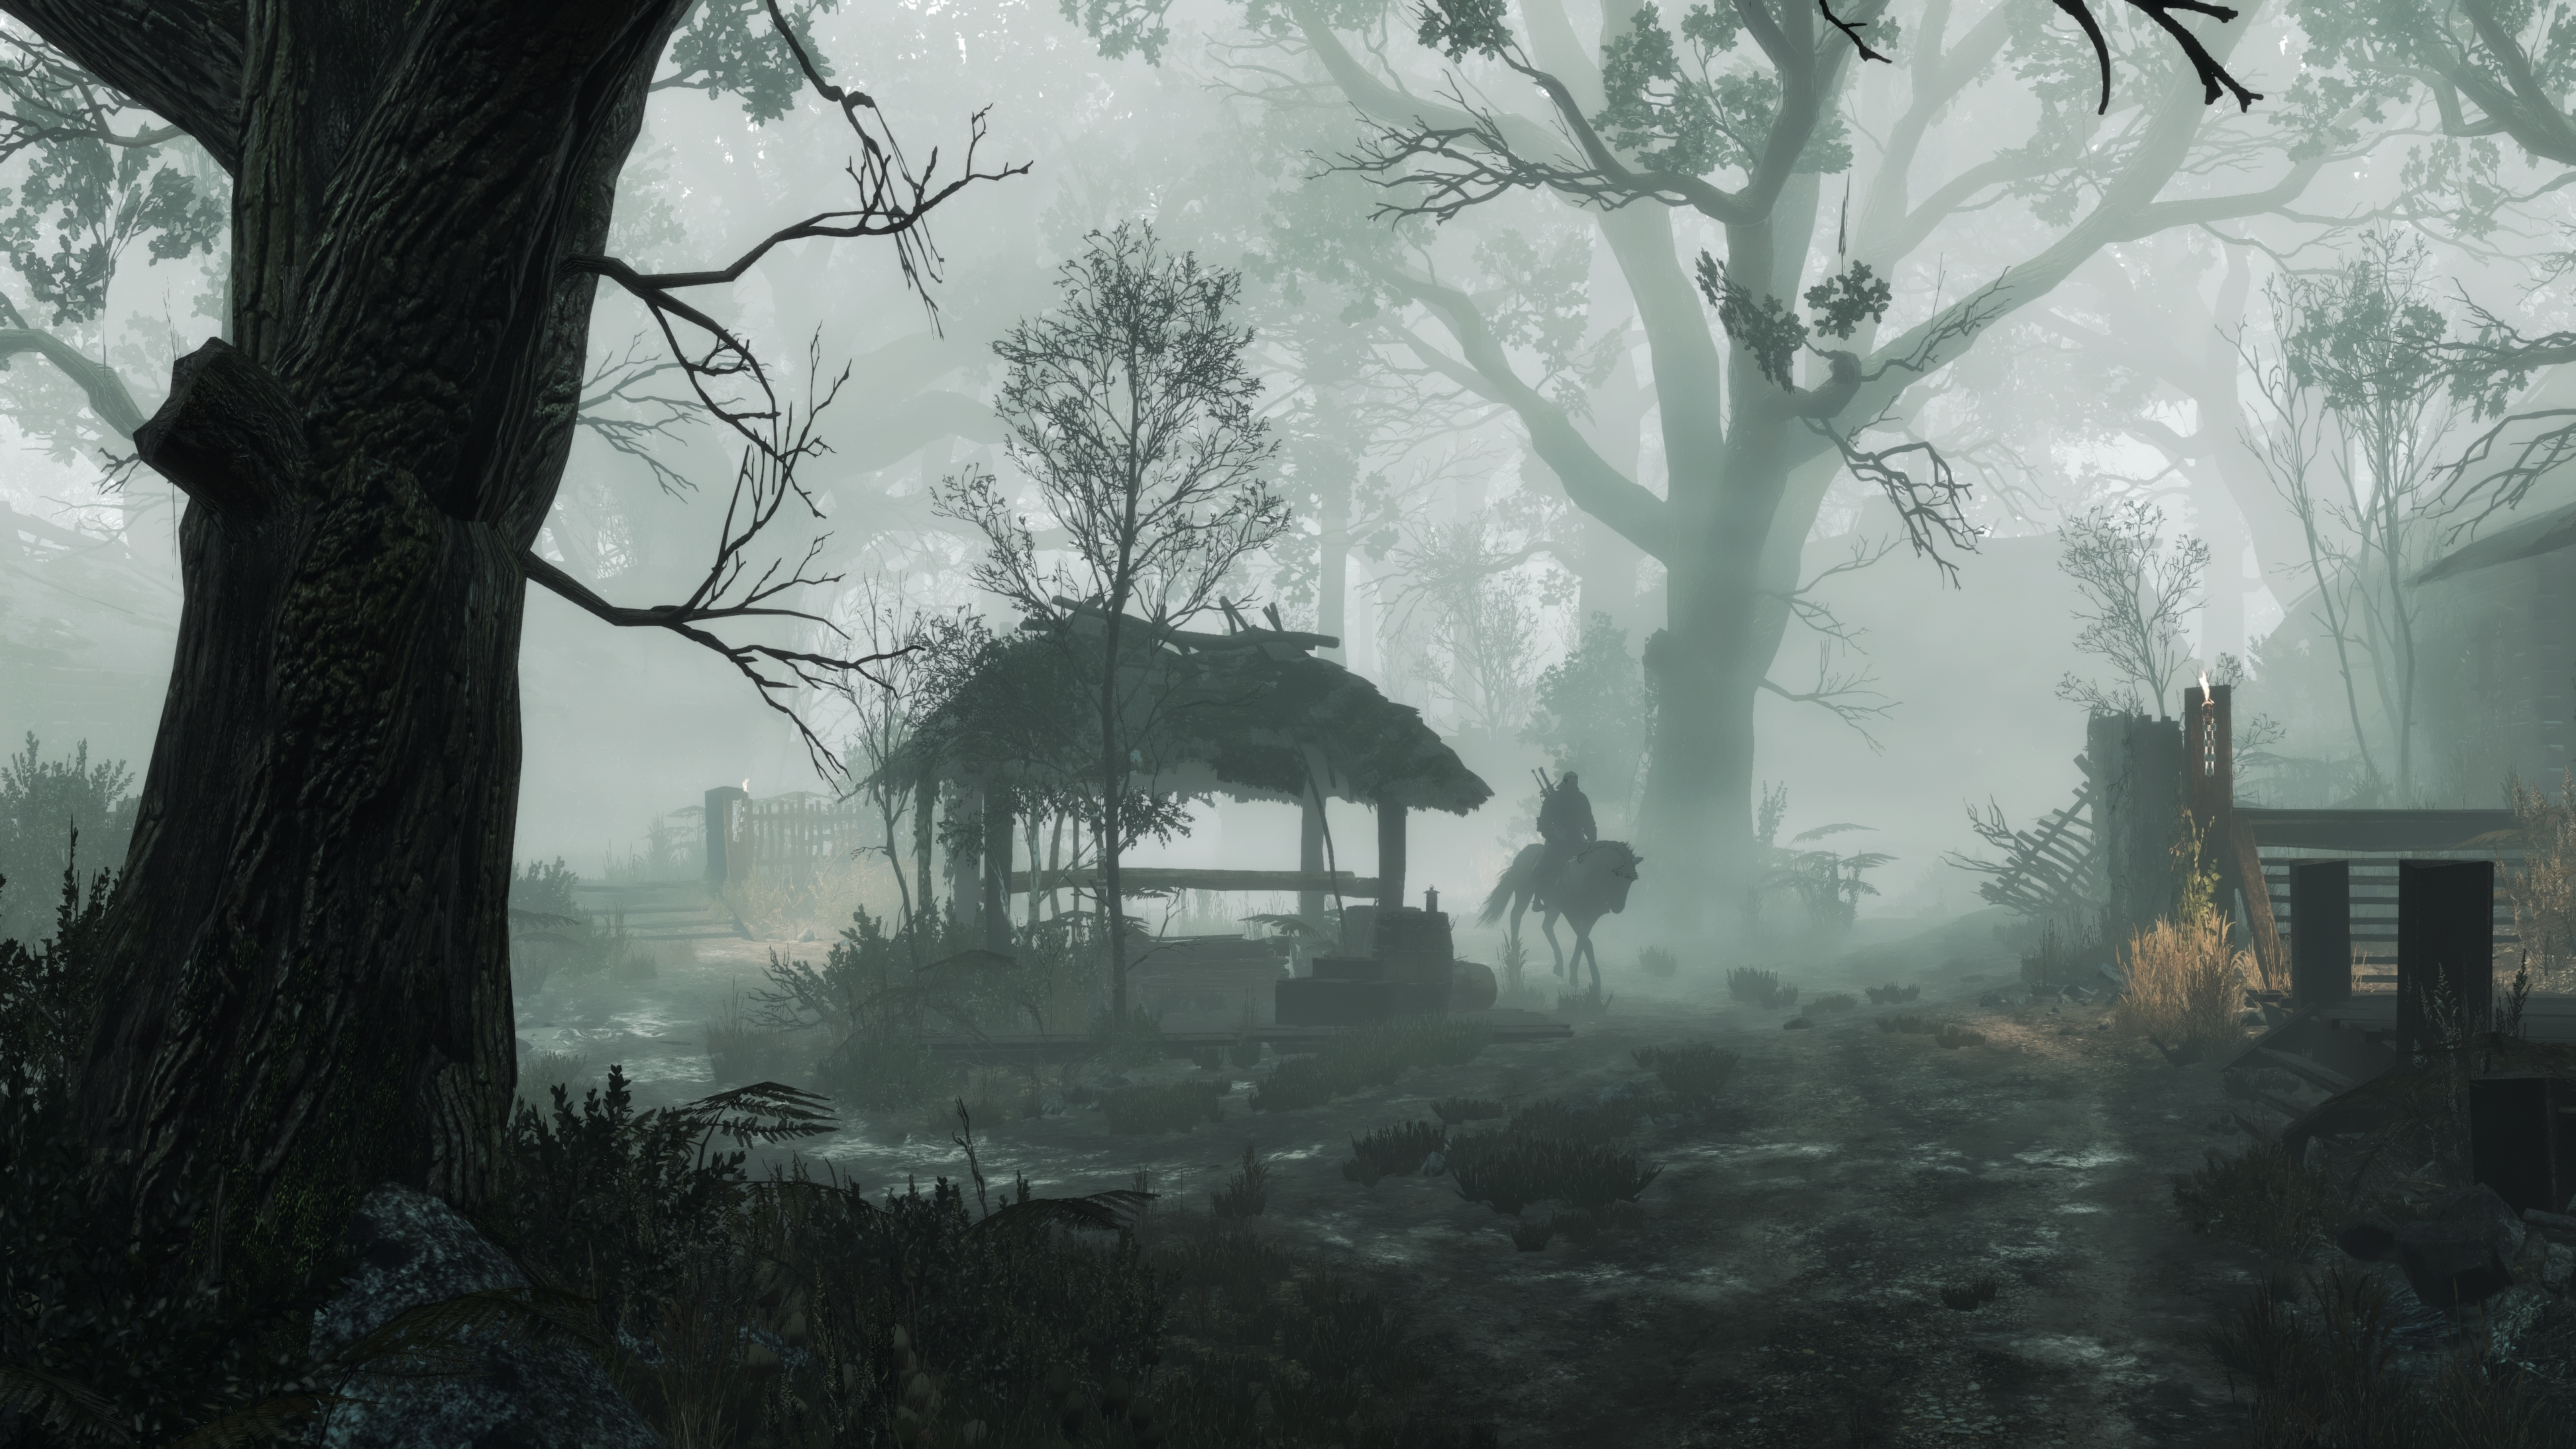 How can I achieve that kind of fog in Witcher 3? Is it possible